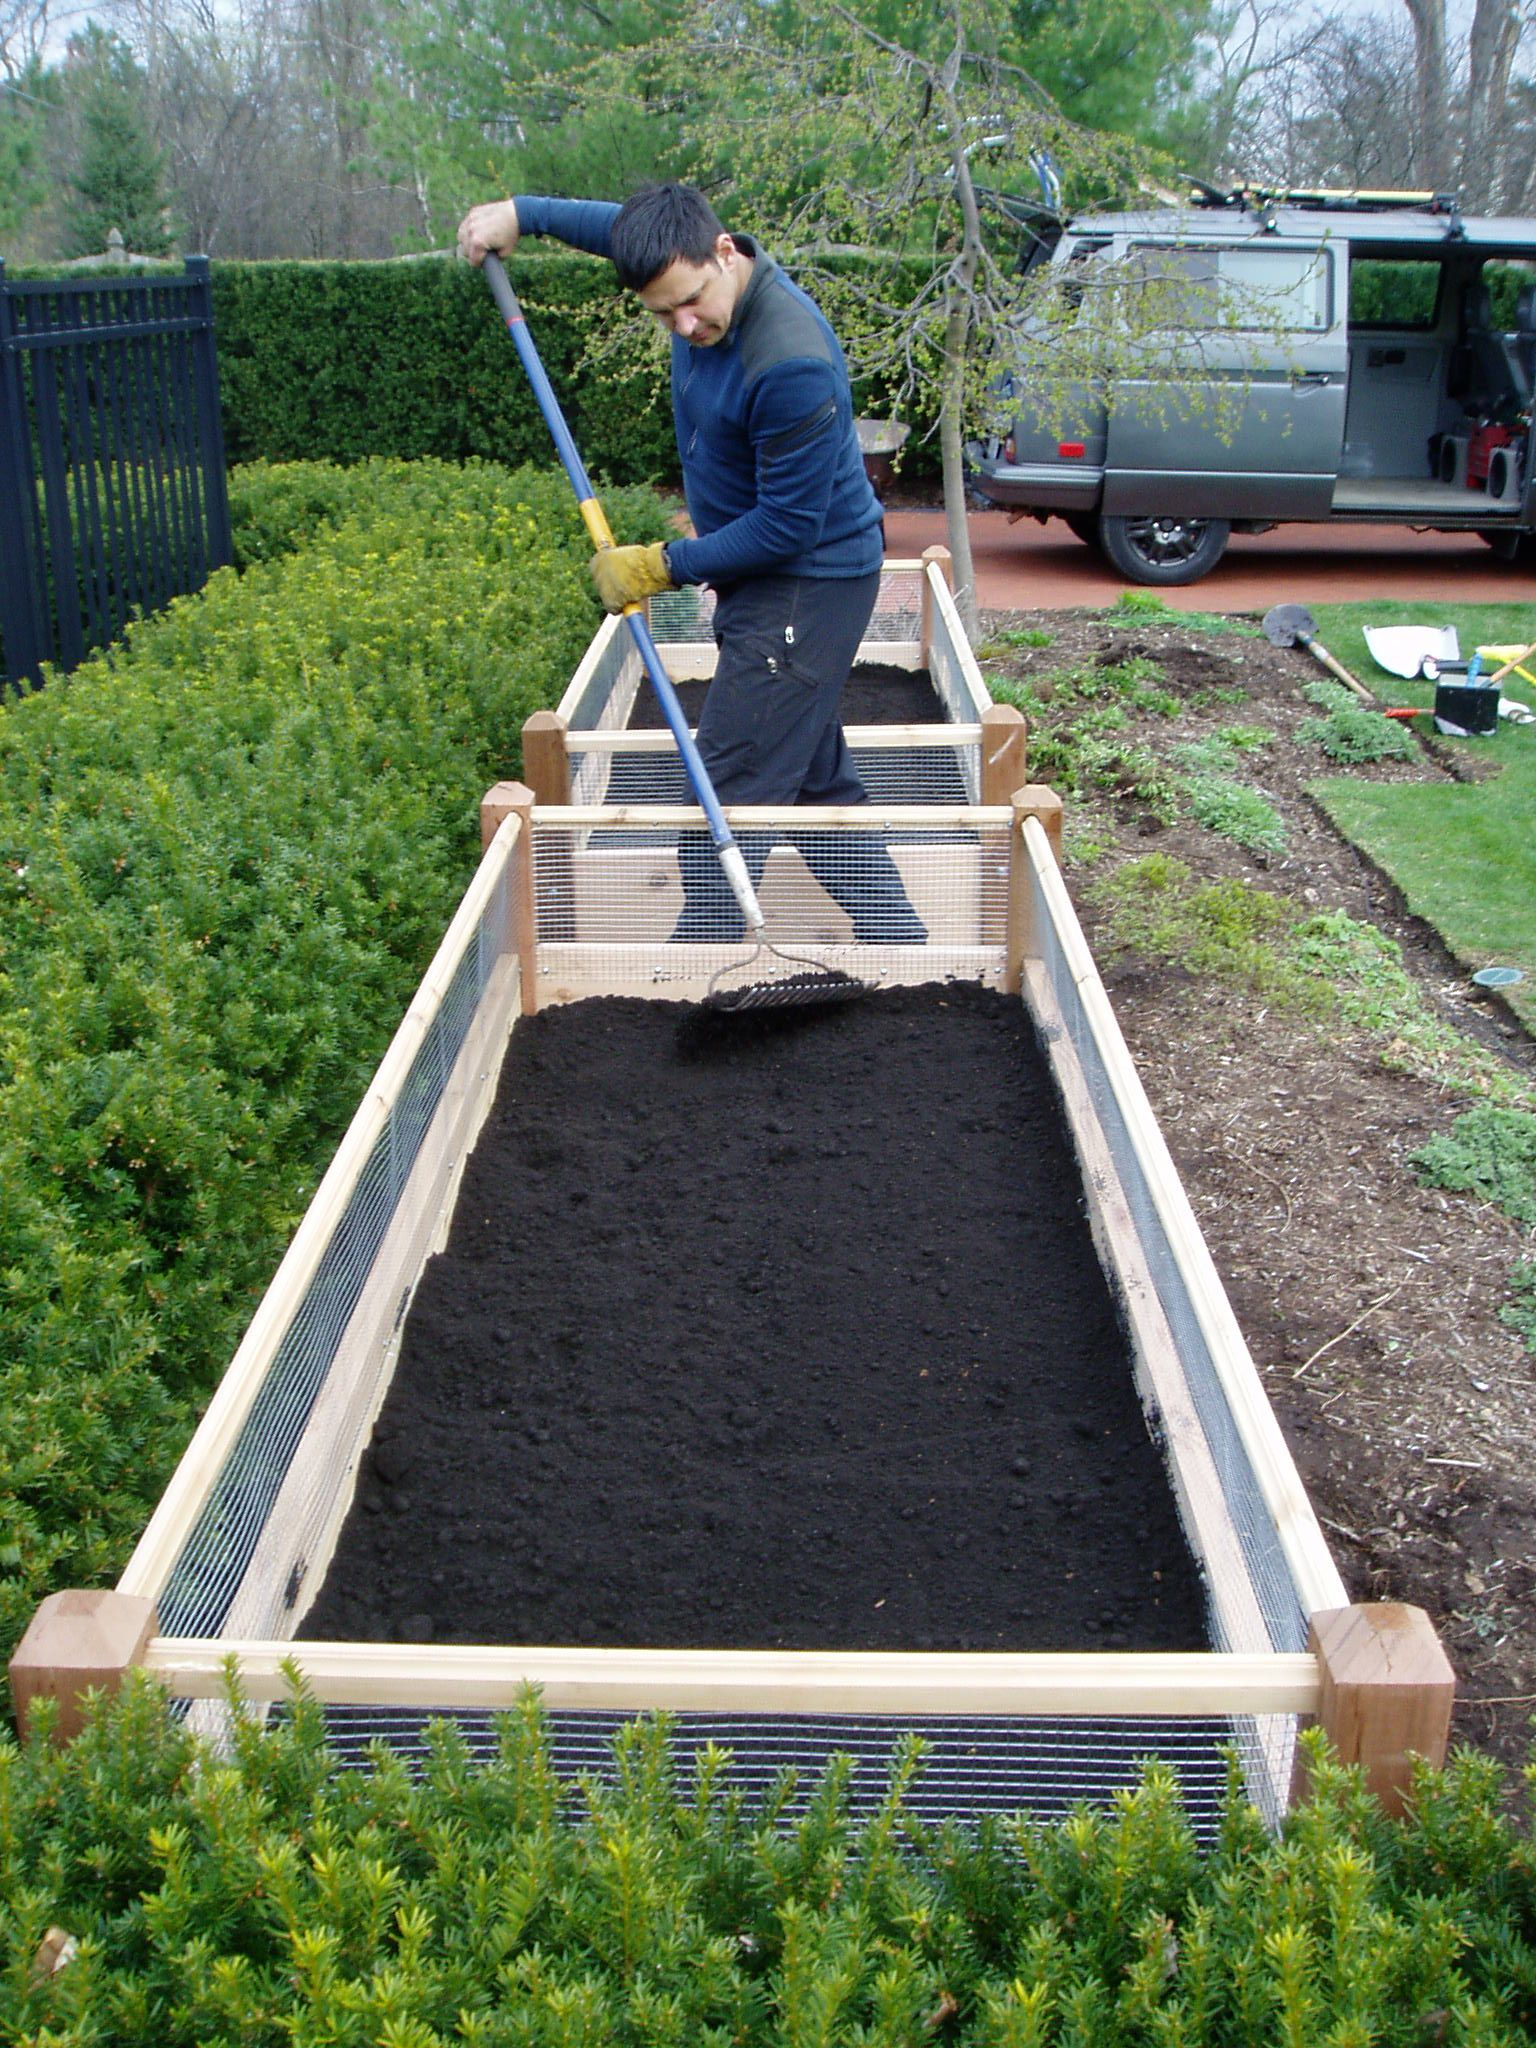 Healthy Roots raised garden beds makes gardening and